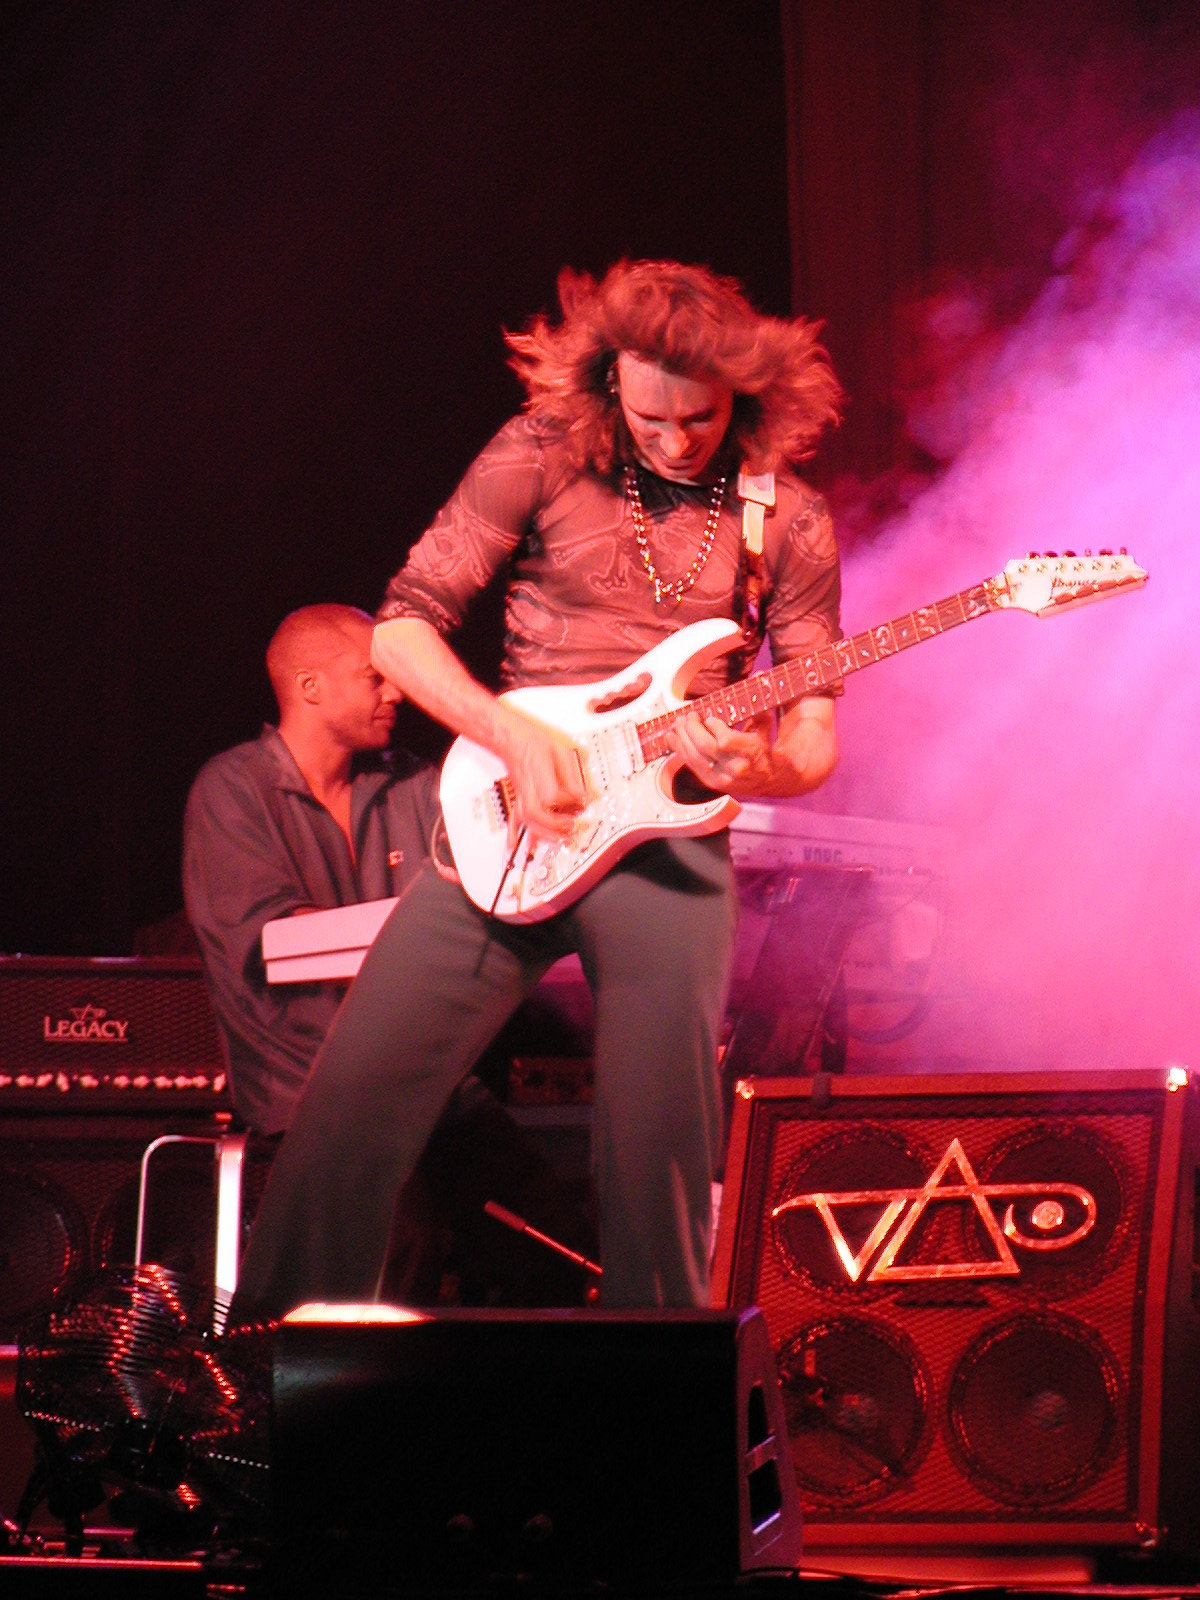 Steve Vai - Picture Hot